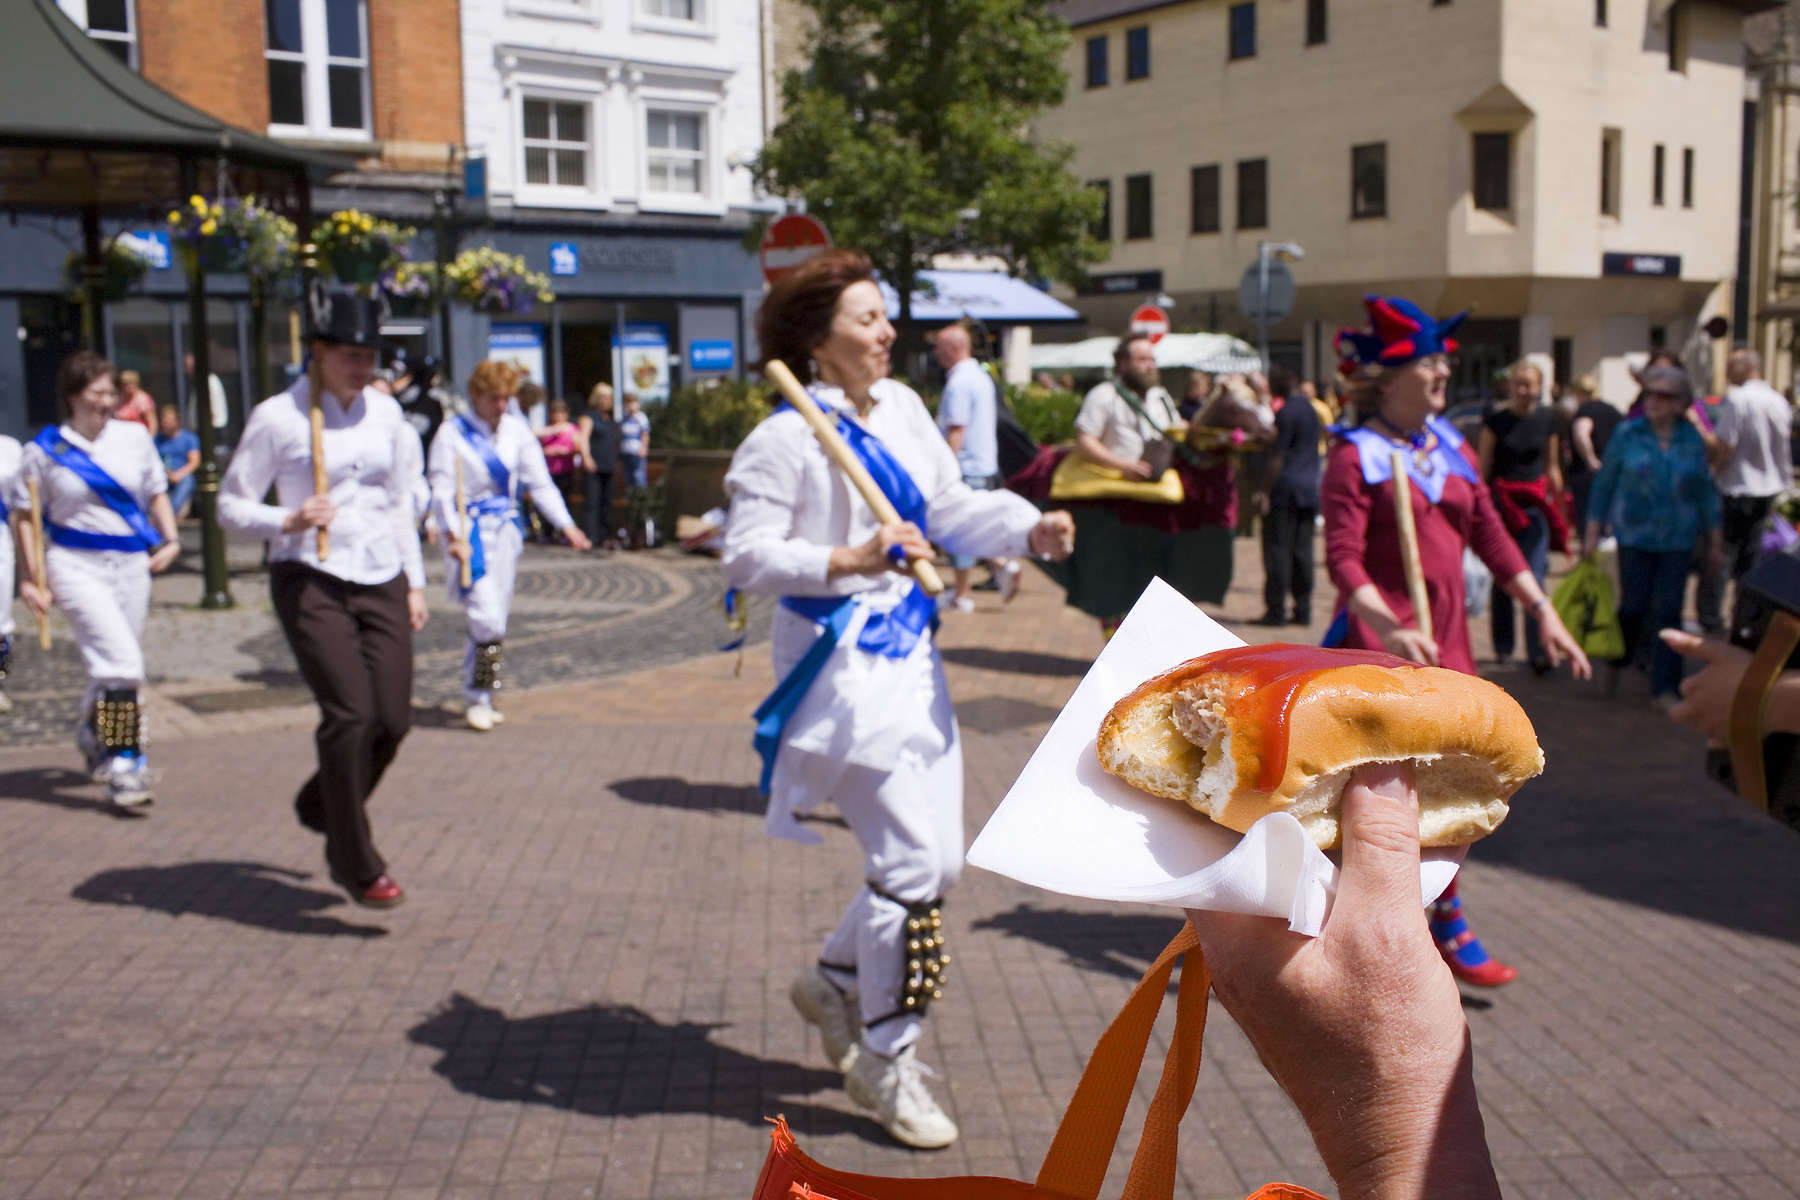 A man with a hot dog watches Morris-Women perform in Banbury town centre as part of the Hobby Horse festival. A hobby horse is a puppet-like costume giving the wearer the appearance of a man with a horse. For centuries hobby horses, Jack in the Greens, straw men and other characters brought life and colour to civic processions in towns and cities across the country, many of them can be seen in carvings in local churches. The Oxfordshite town of Banbury revived the tradition of a procession through the town in 2000. Banbury's history goes back to Anglo-Saxon times. An earlier charter from Queen Mary in 1554 had officially established Banbury as a town.